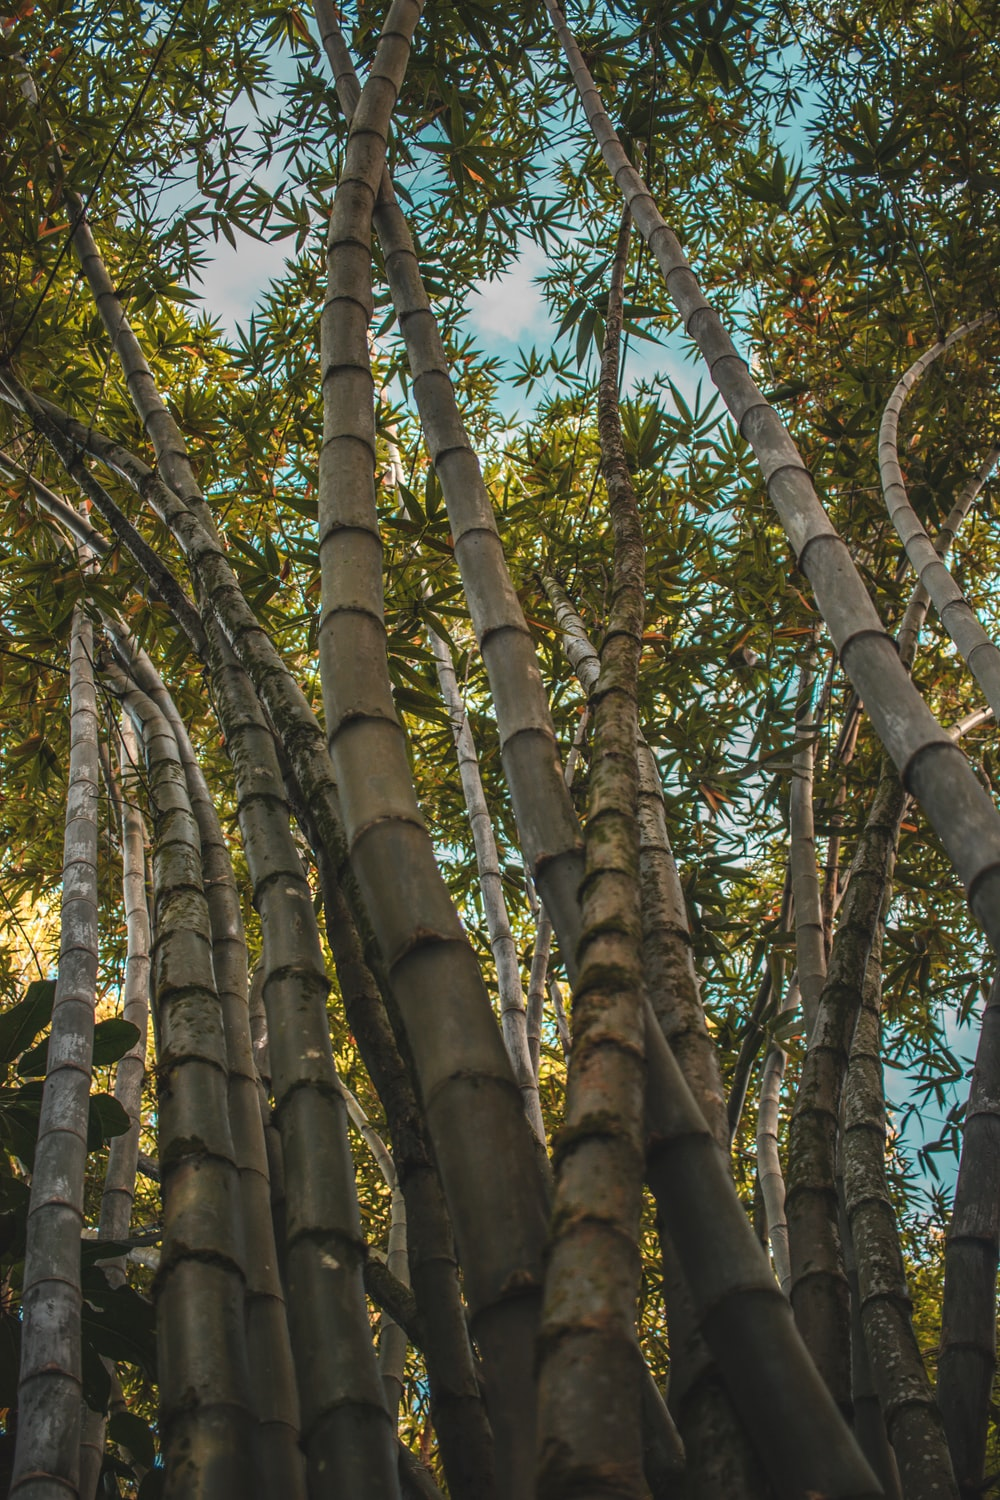 low angle photography of bamboo trees during daytime